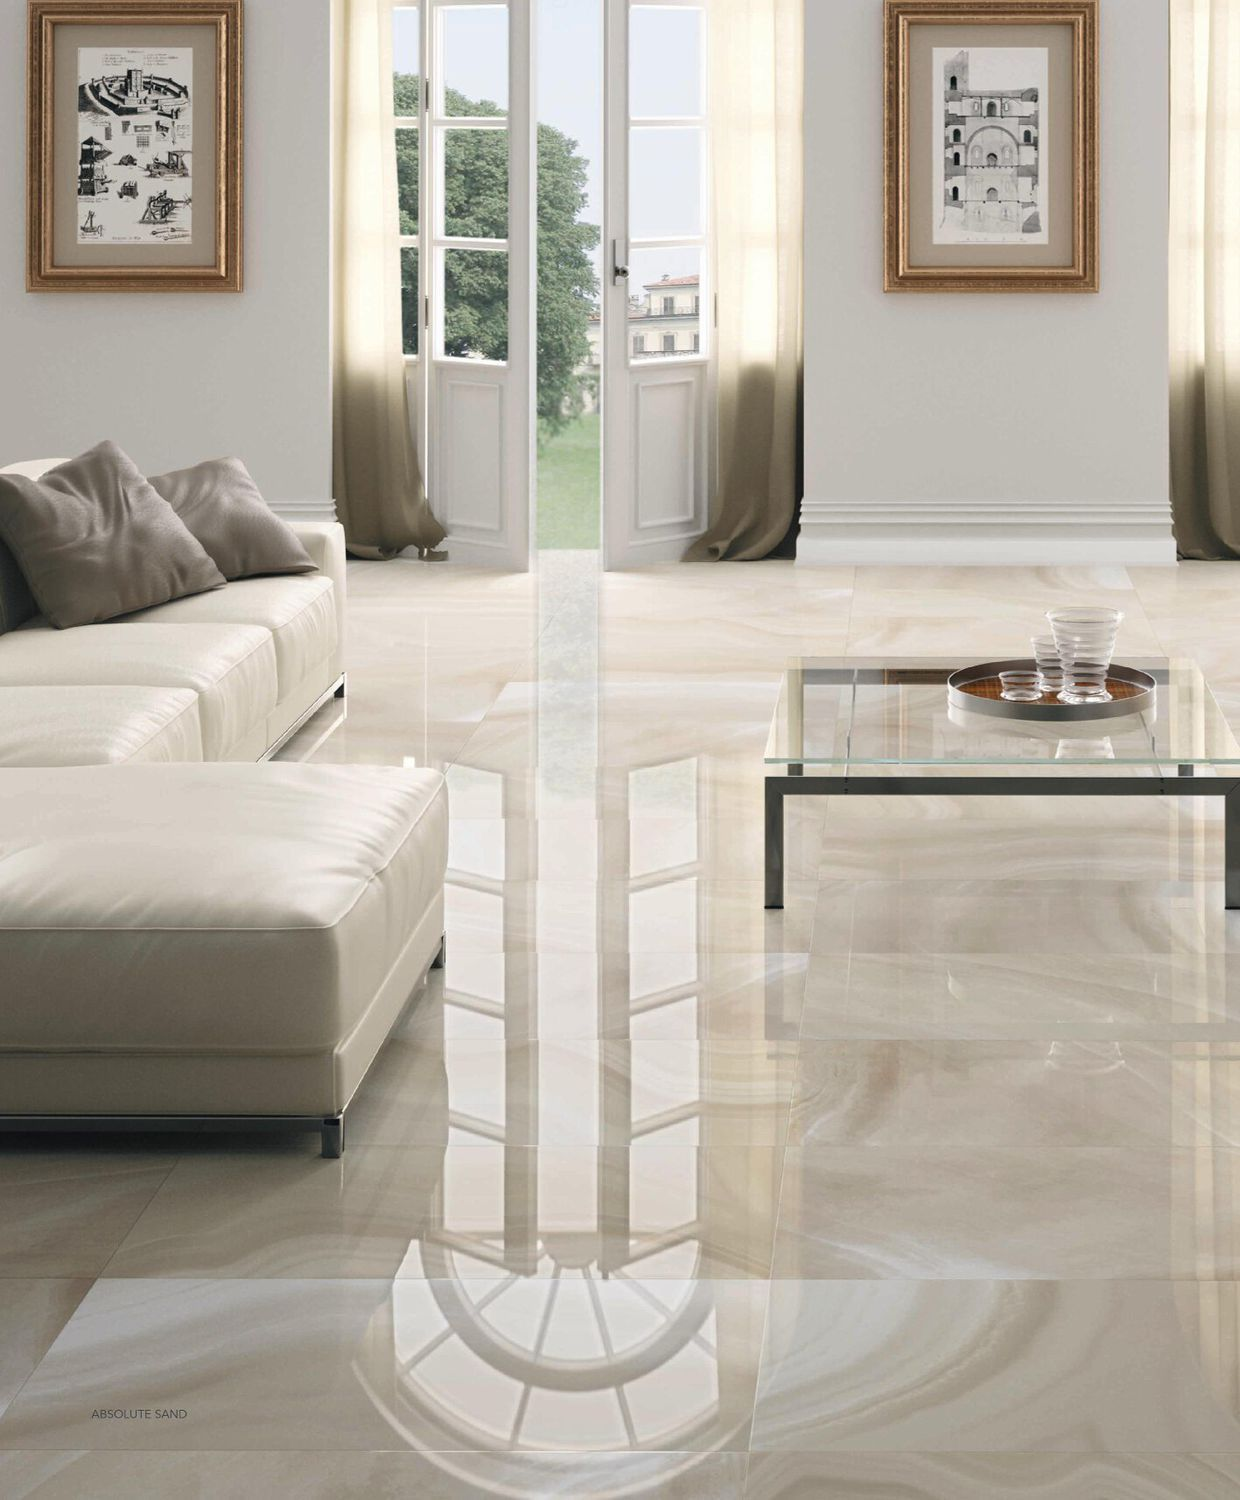 Living Room Floor Tiles Design Pleasing Floor Tile  Porcelain Stoneware  Highgloss  Stone Look High Design Decoration